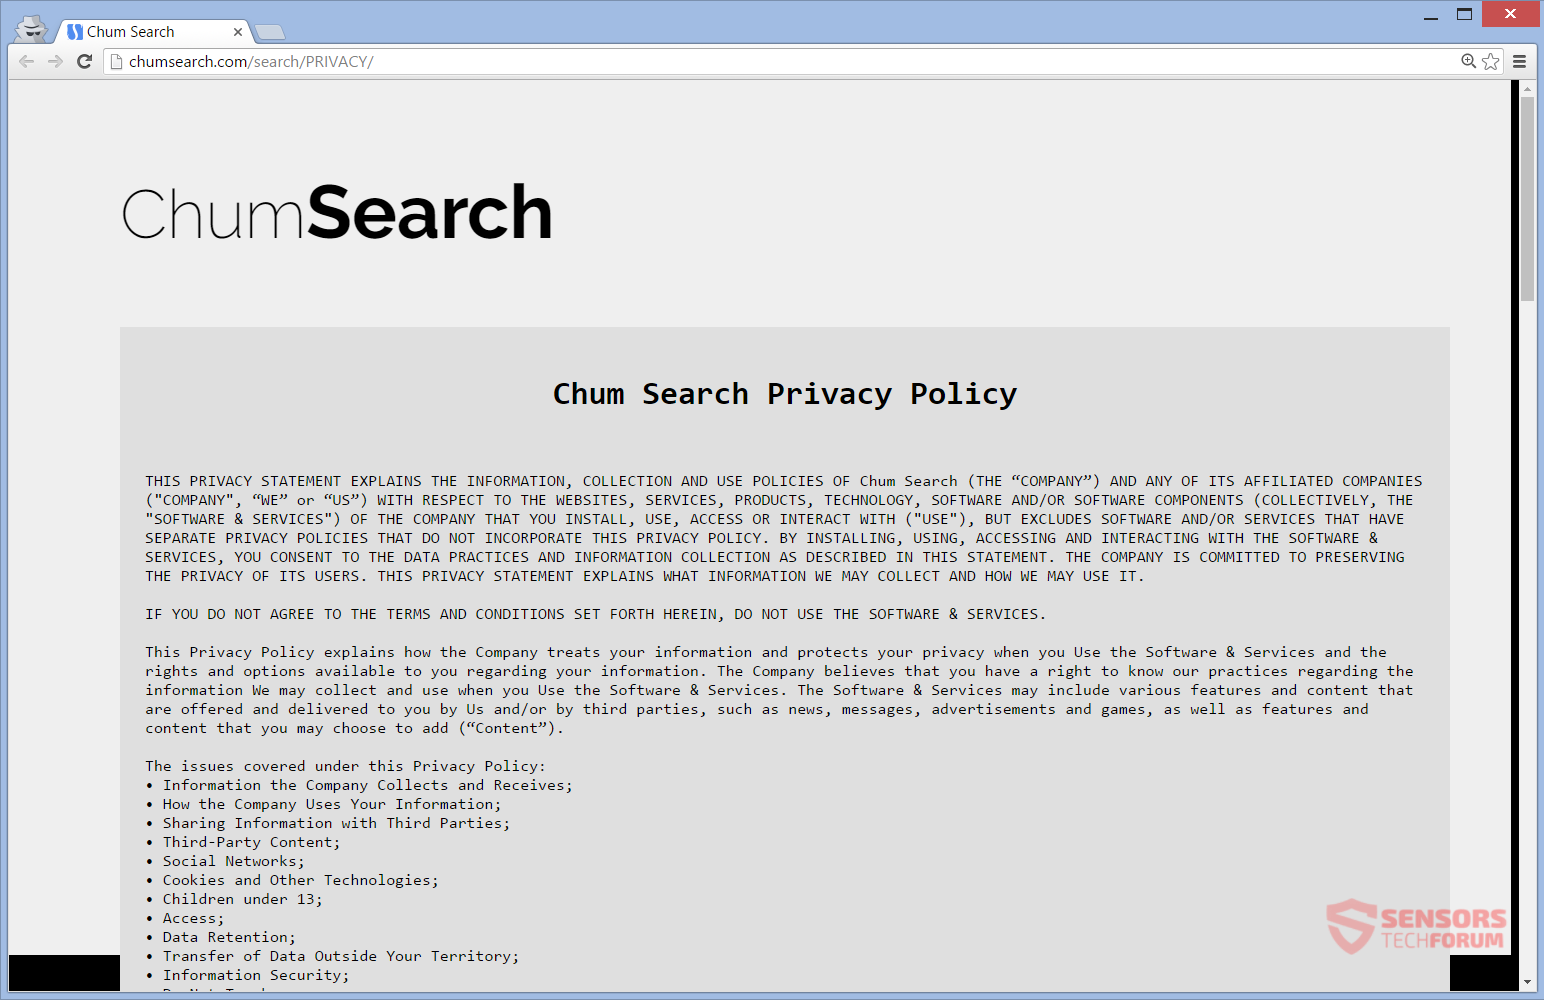 STF-chumsearch-com-search-index-chum-search-privacy-policy